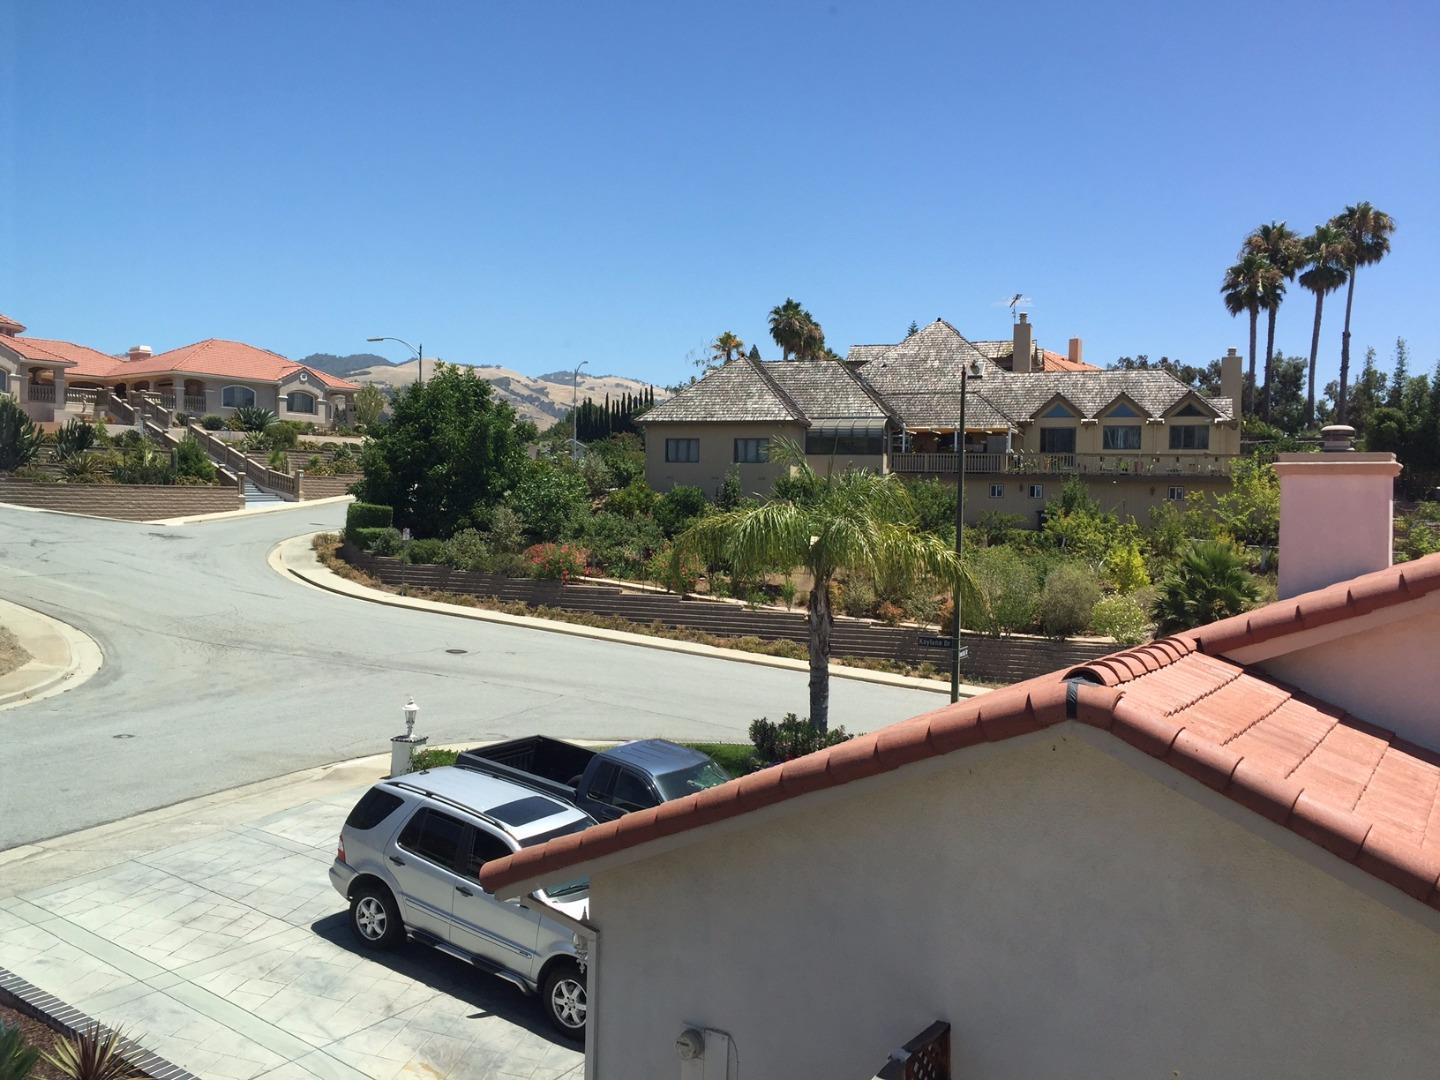 Additional photo for property listing at 3514 Ramstad Drive 3514 Ramstad Drive San Jose, カリフォルニア 95127 アメリカ合衆国